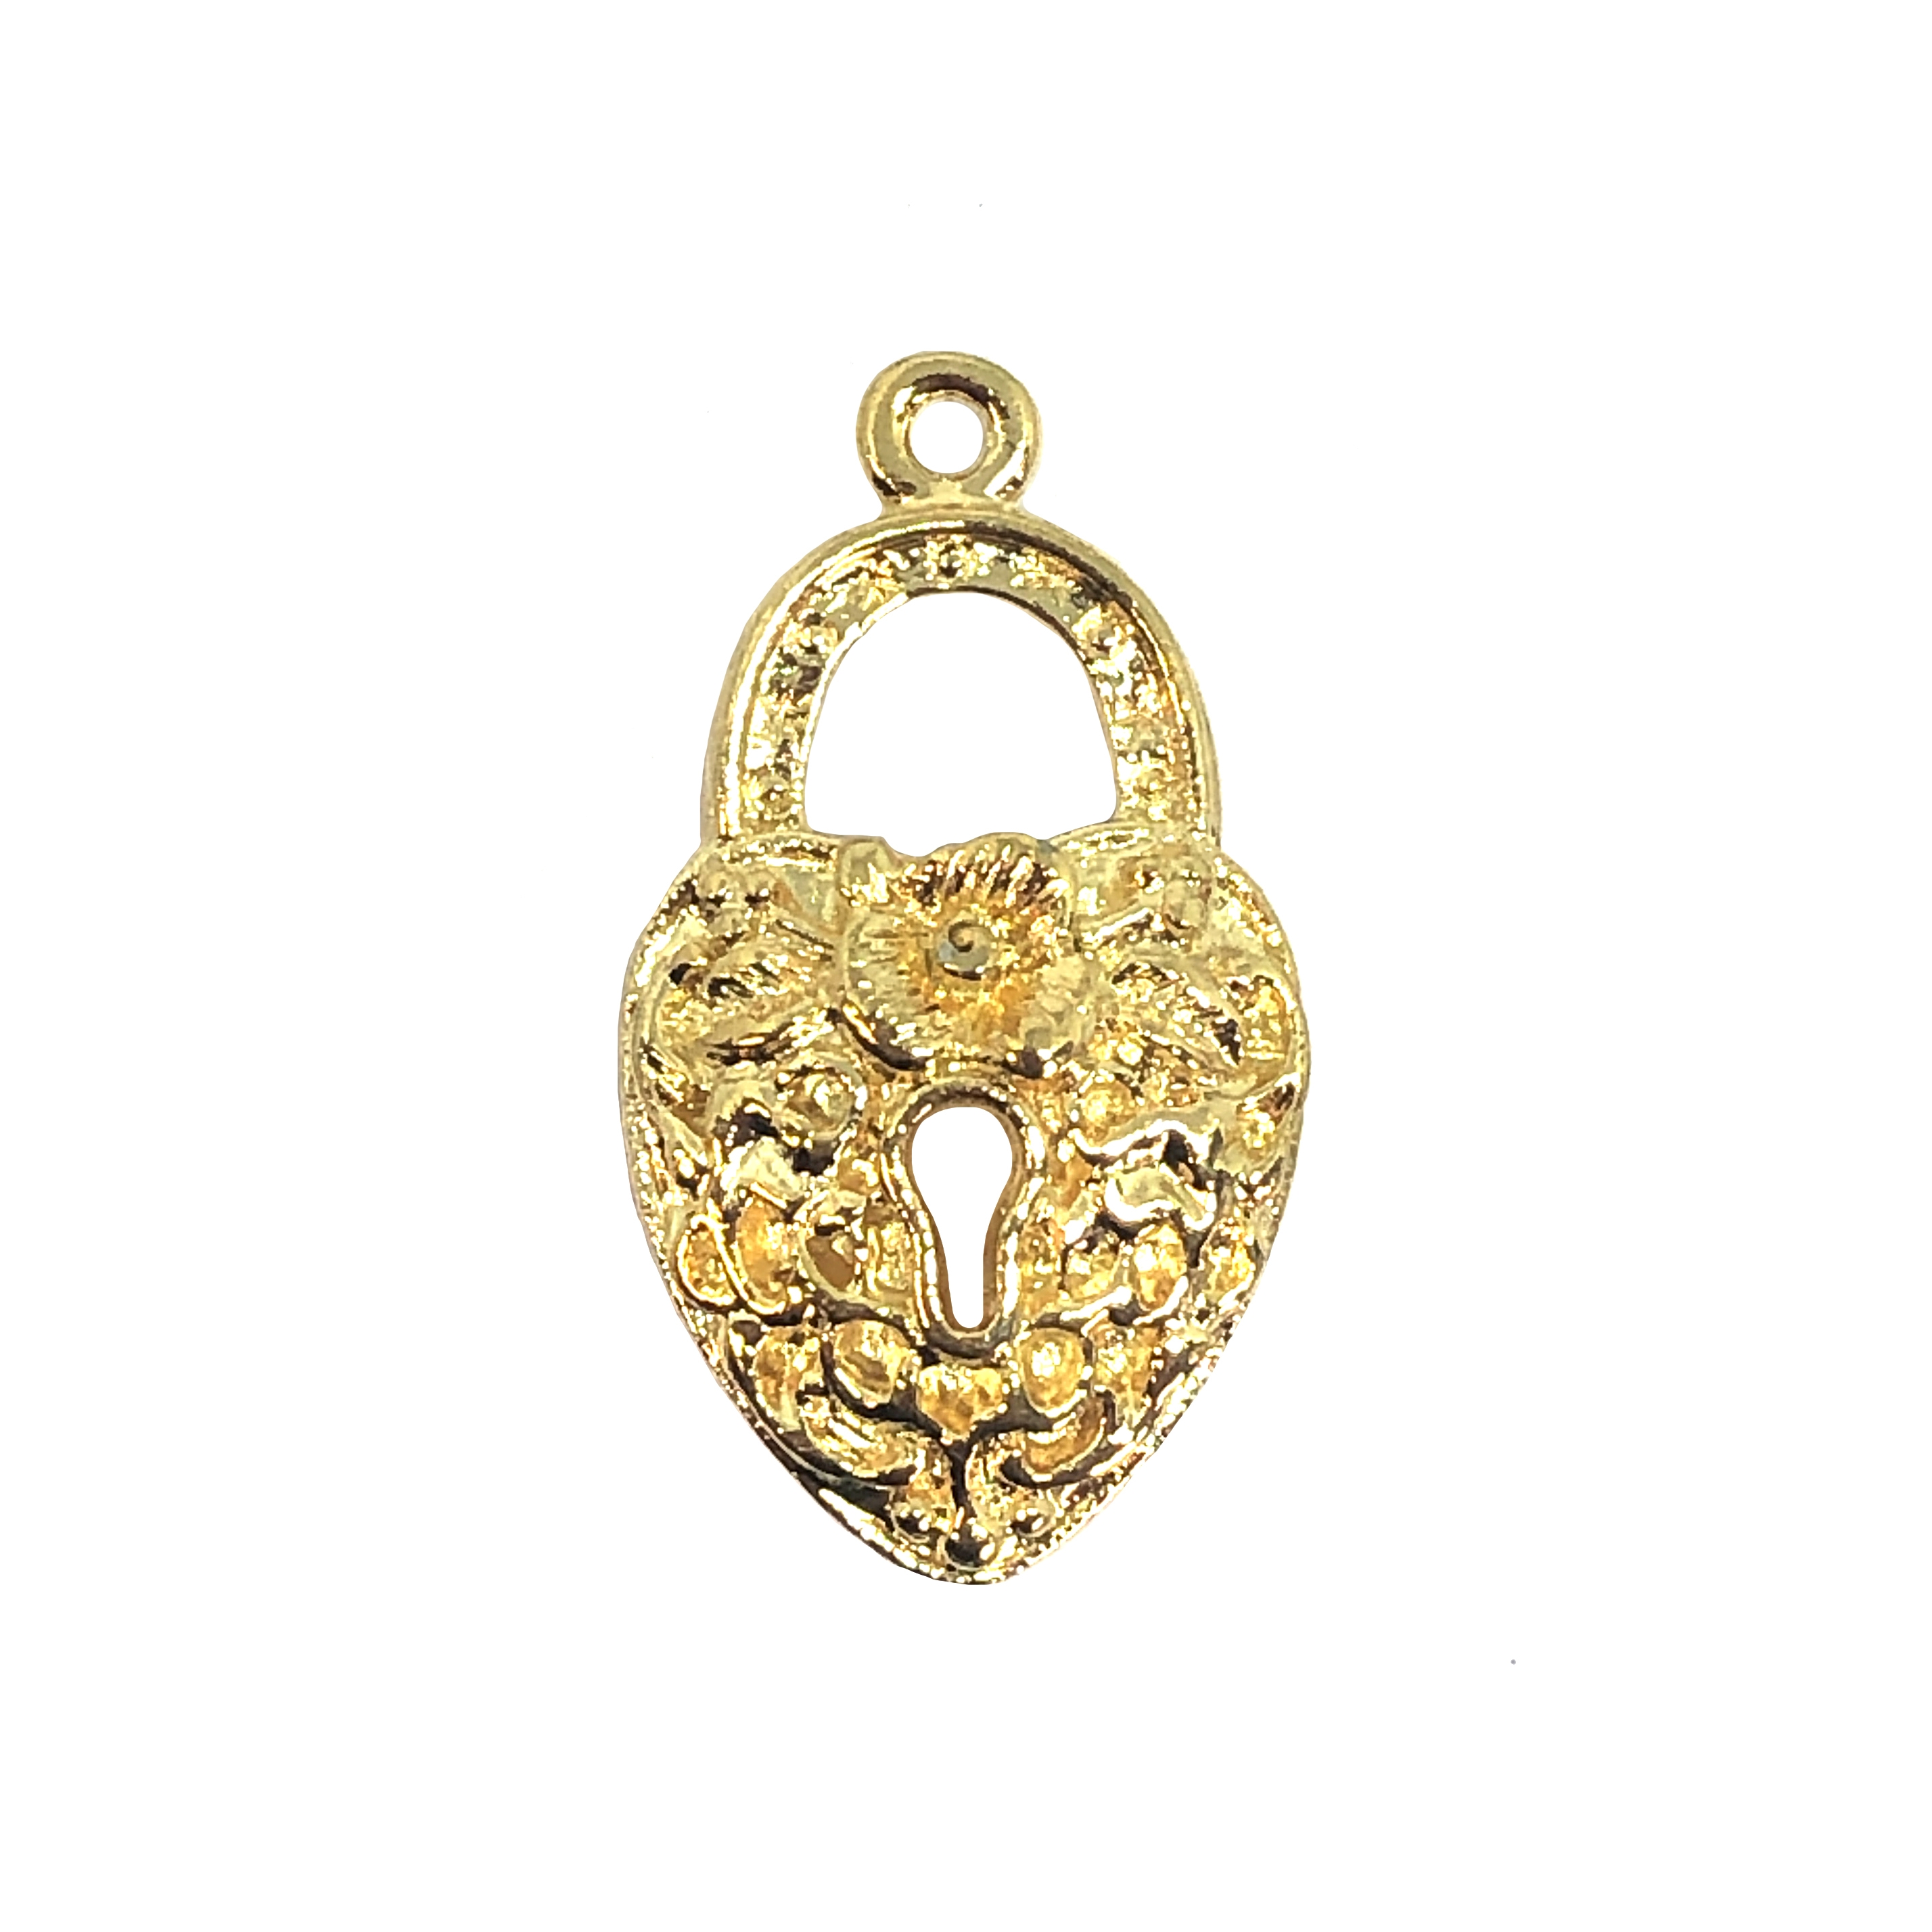 22K plated heart lock pendant, 09492, gold dipped, 22K, heart pendant, vintage, B'sue by 1928, lead free pewter castings, cast pewter jewelry findings, made in the USA, key hole lock, 1928 Company, B'sue Boutiques, lock